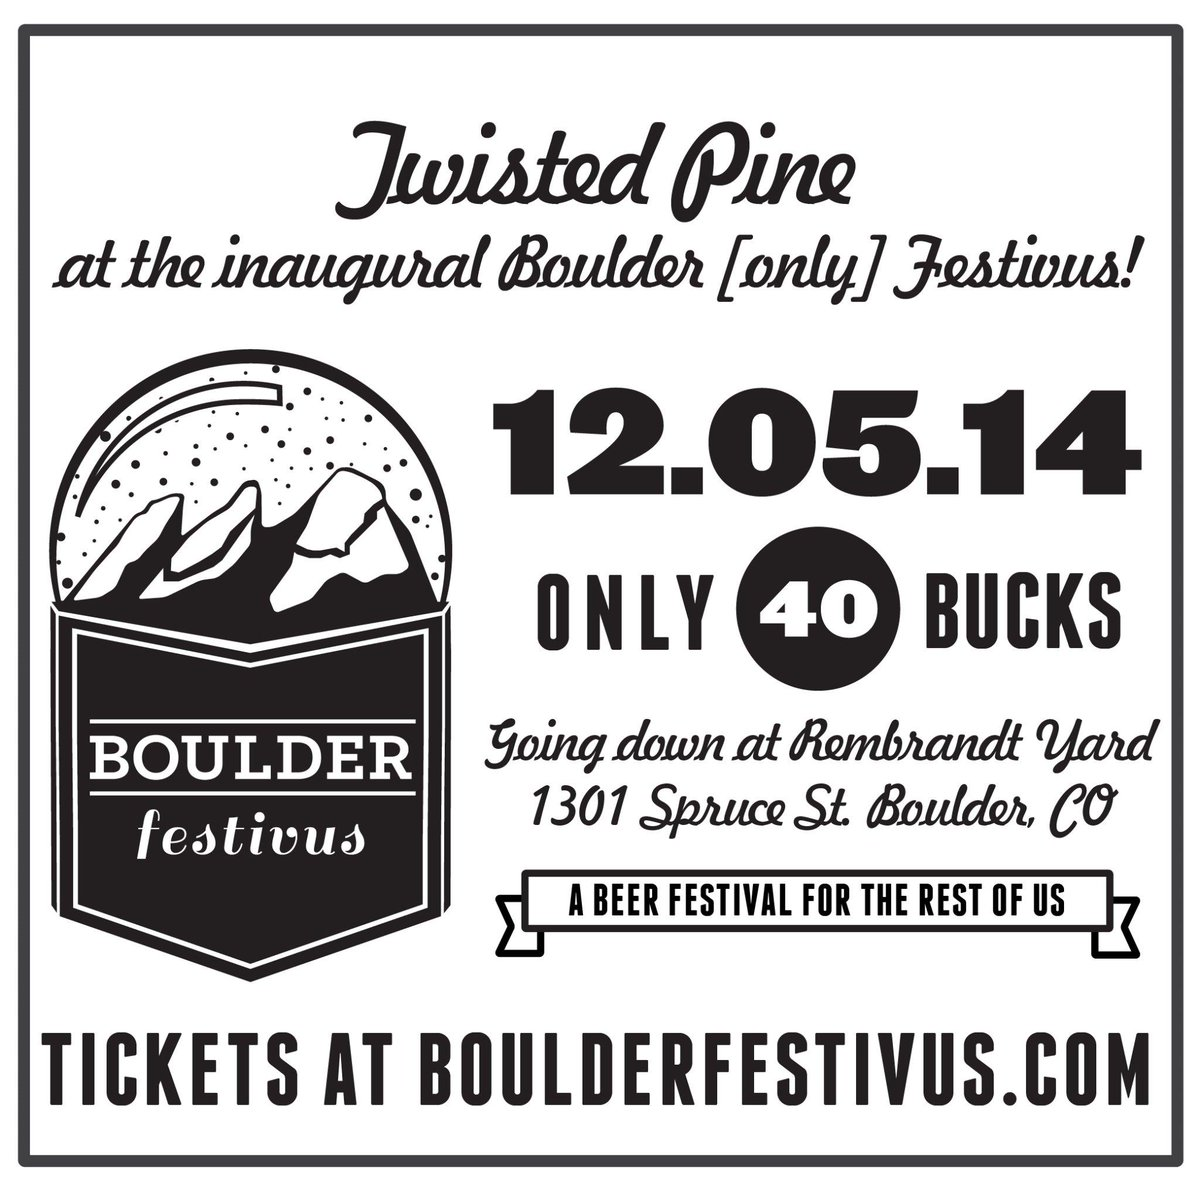 So stoked for our first Festivus this Friday! #Boulder breweries only! #craftbeer #festivus http://t.co/UOm9eLVyDH http://t.co/58JTn4x2Pd